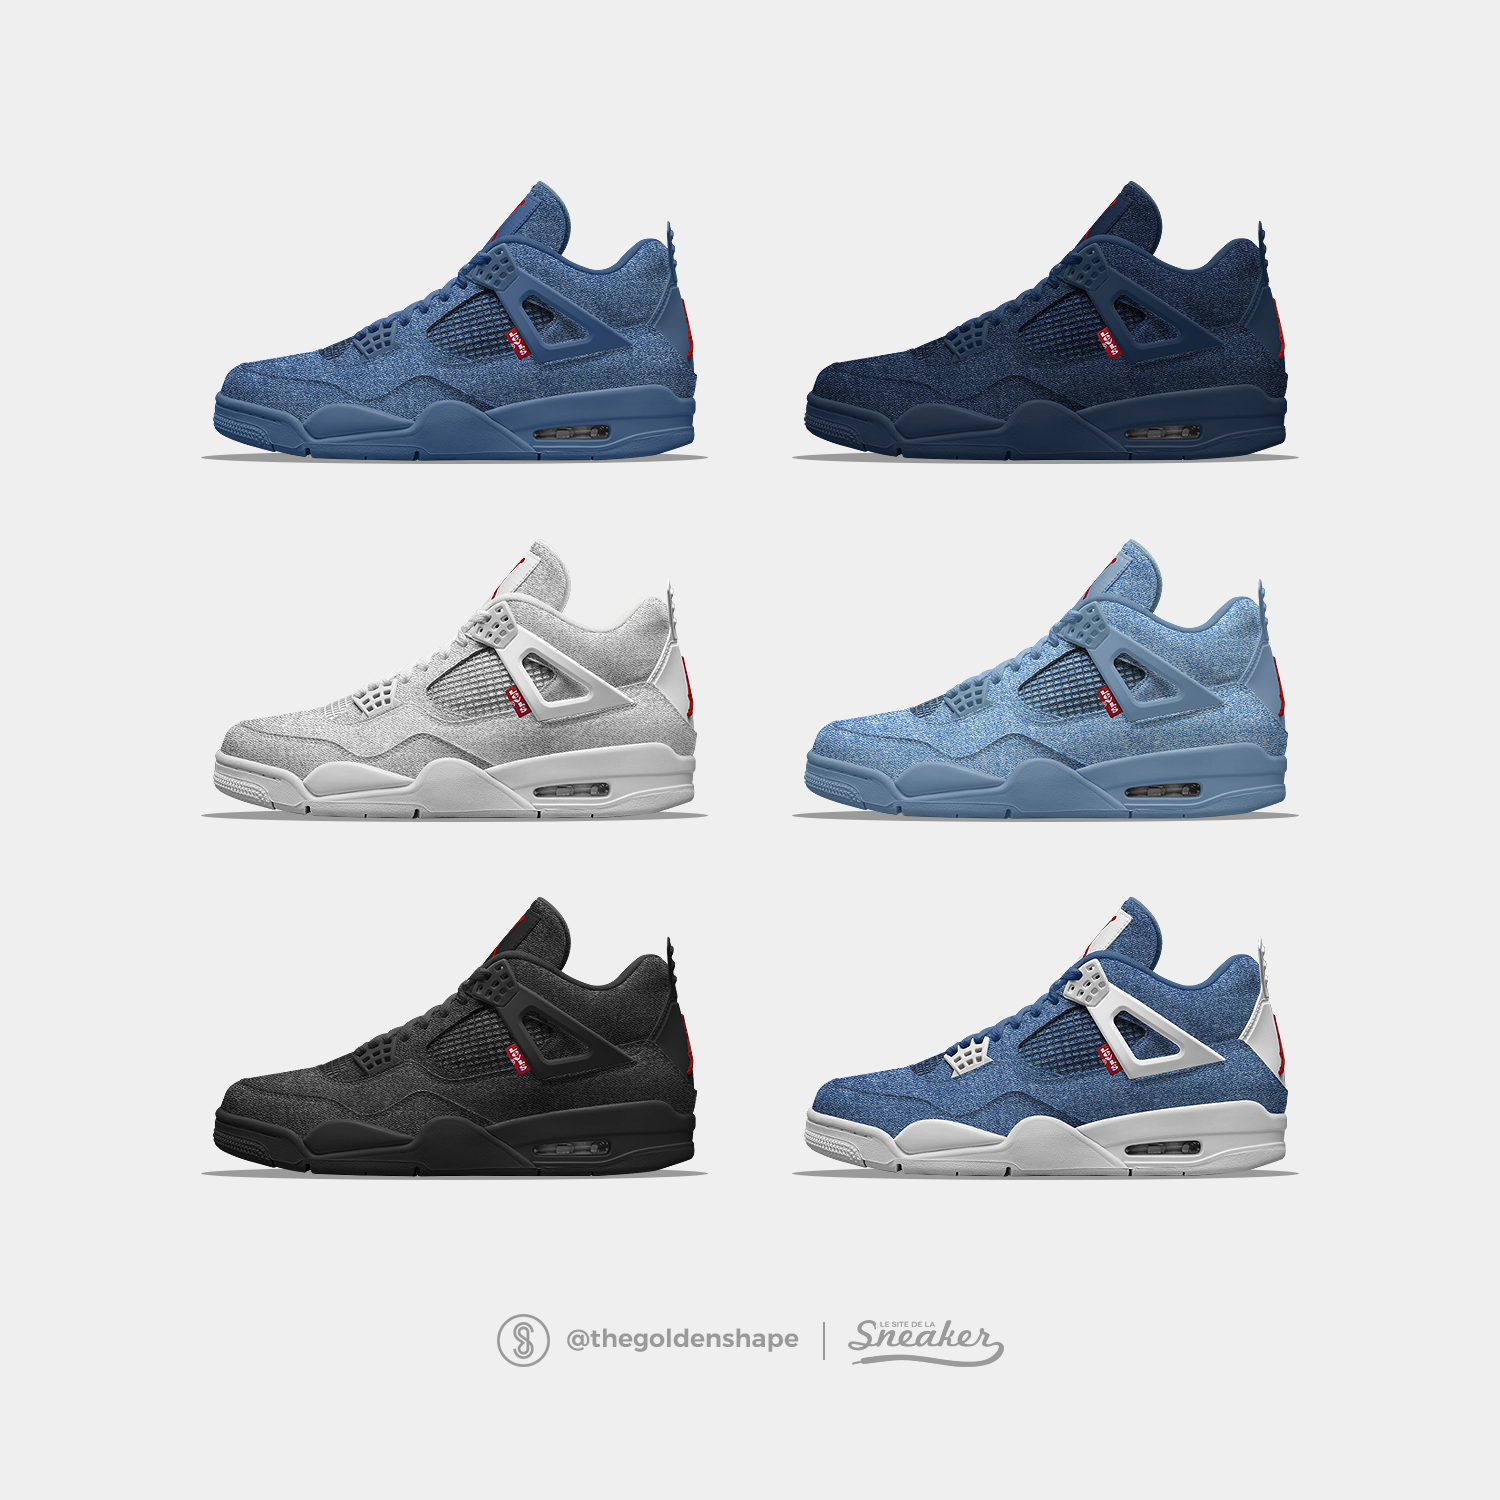 Levi s x Air Jordan 4 Denim Pack   Make-Up 9452a3fbba7f